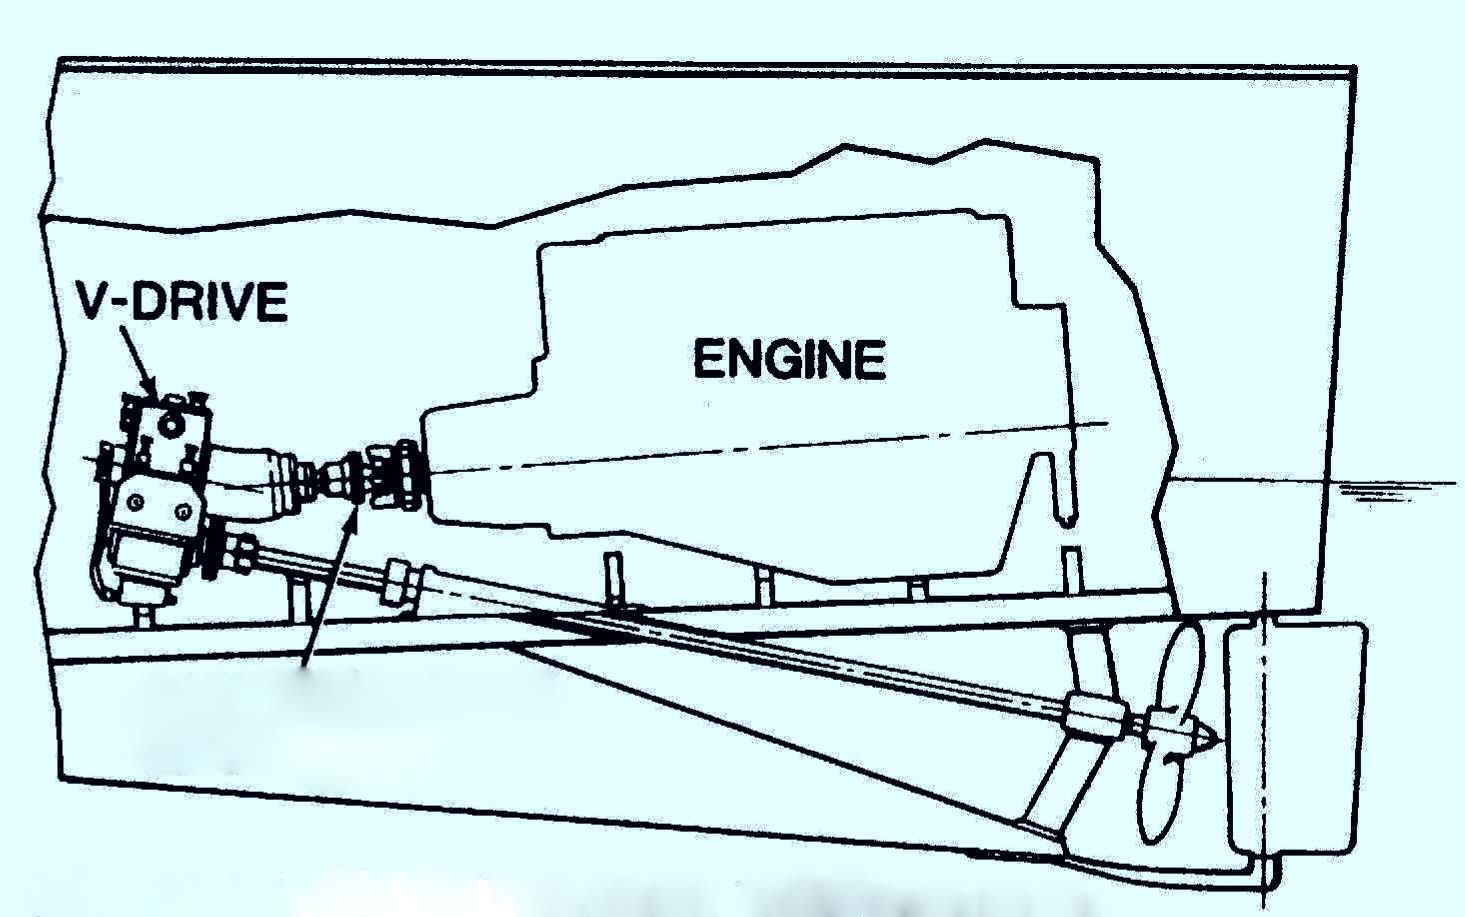 The Pearson 323 Typical Inboard Wiring Diagrams Engine Diagram V Drive Installation